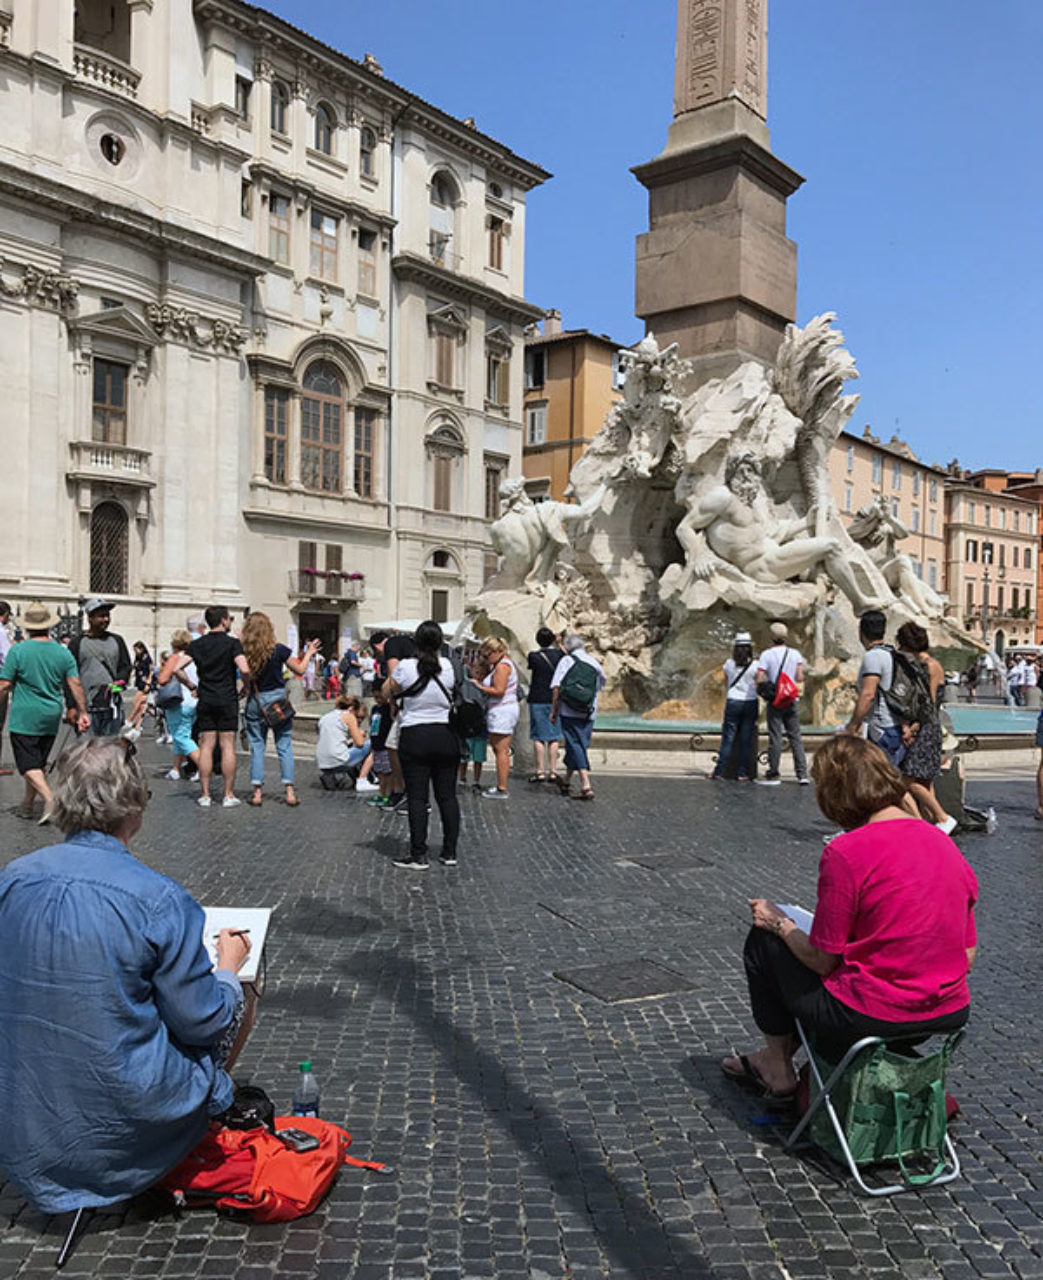 Christopher H. Browne Rome Drawing Tour participants sketching at Piazza Navona